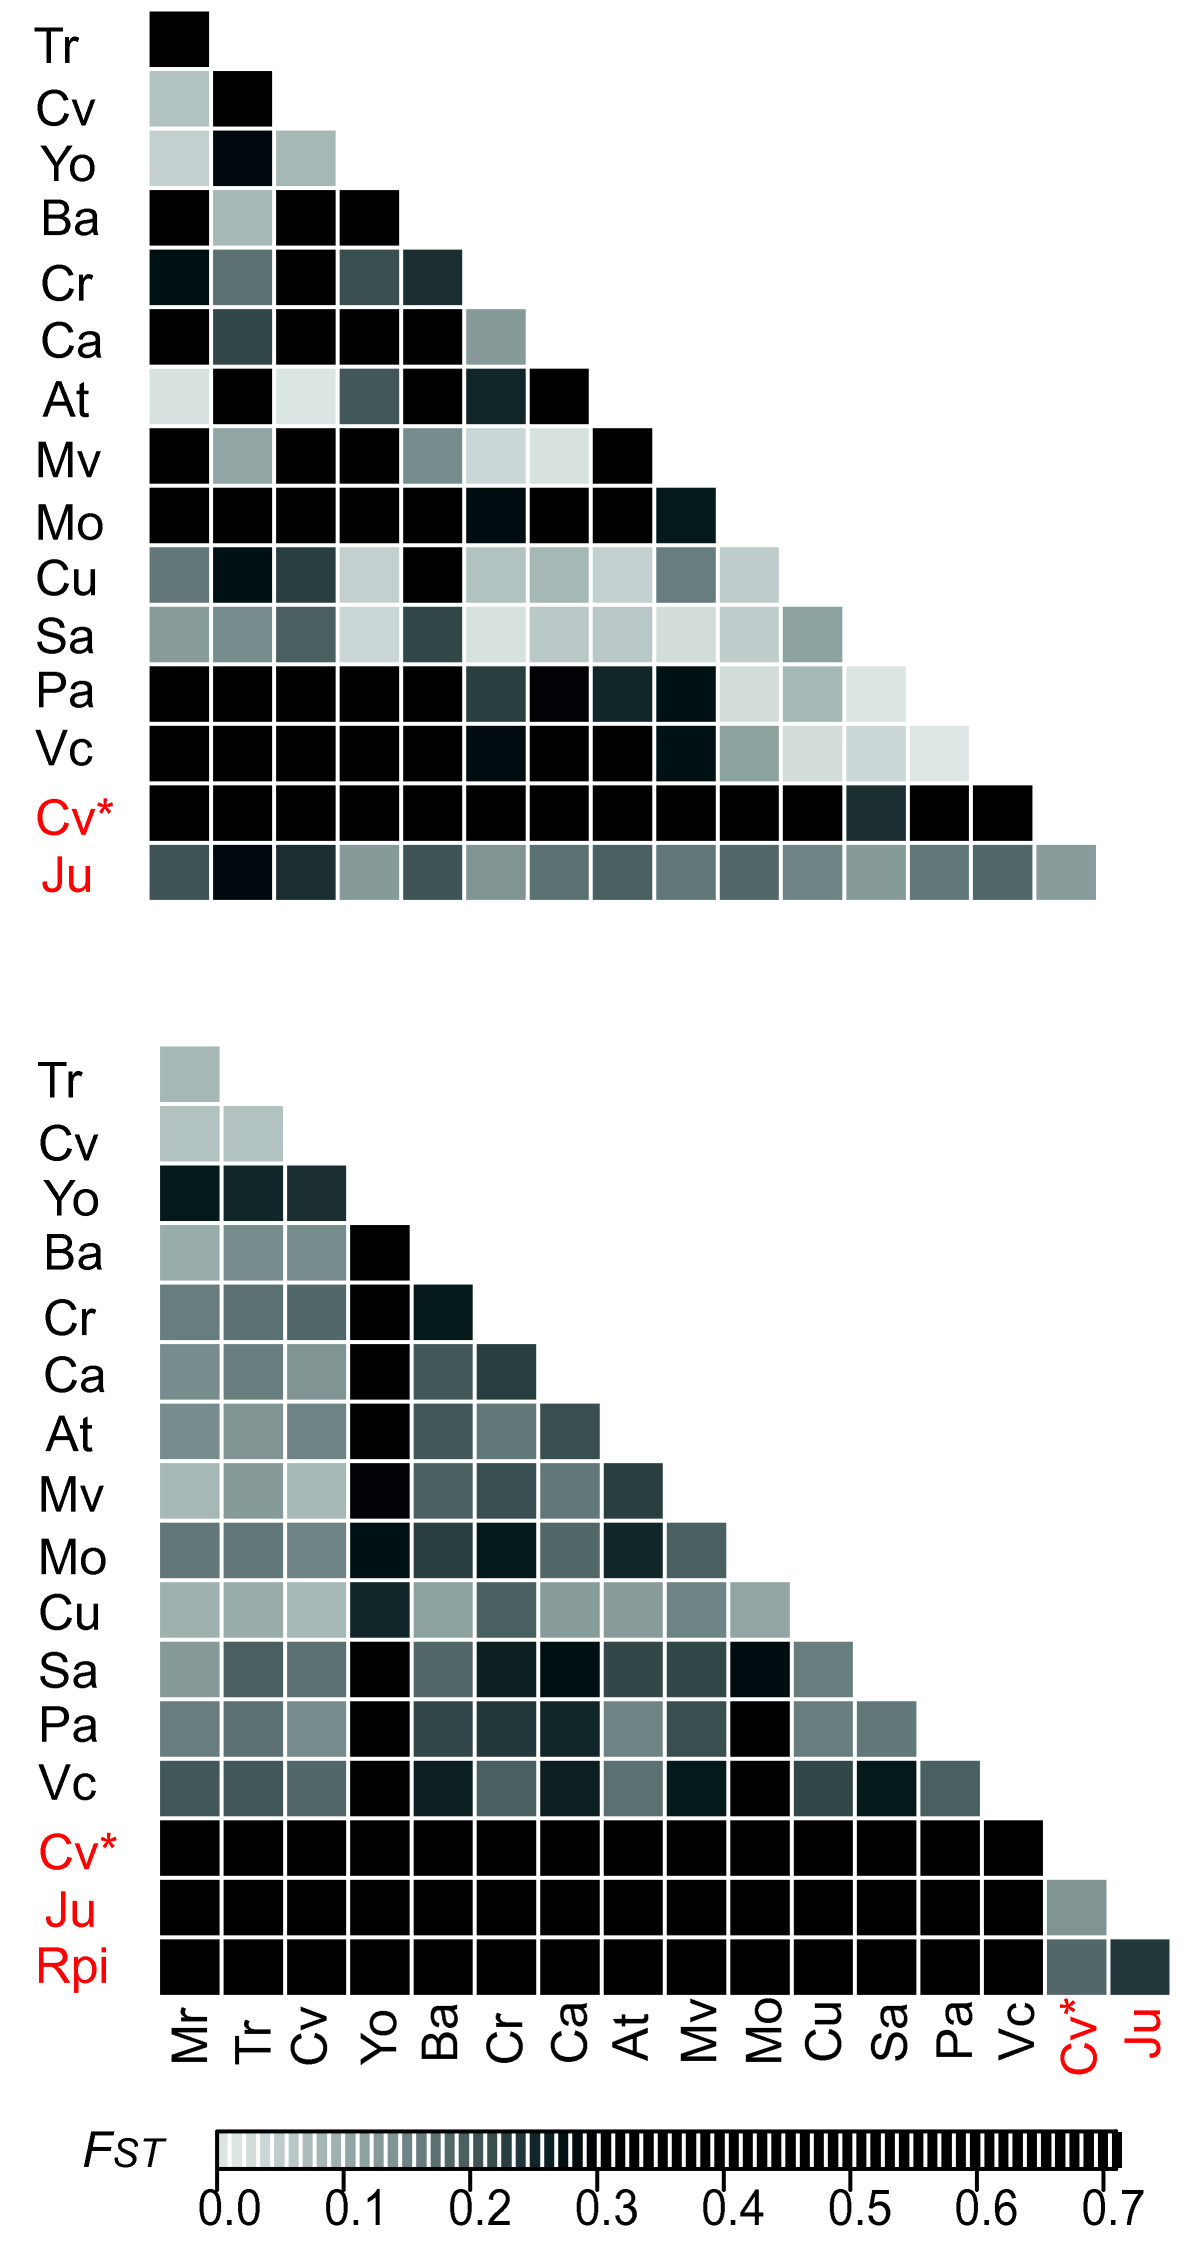 https://static-content.springer.com/image/art%3A10.1186%2F1471-2148-11-358/MediaObjects/12862_2011_Article_1977_Fig3_HTML.jpg